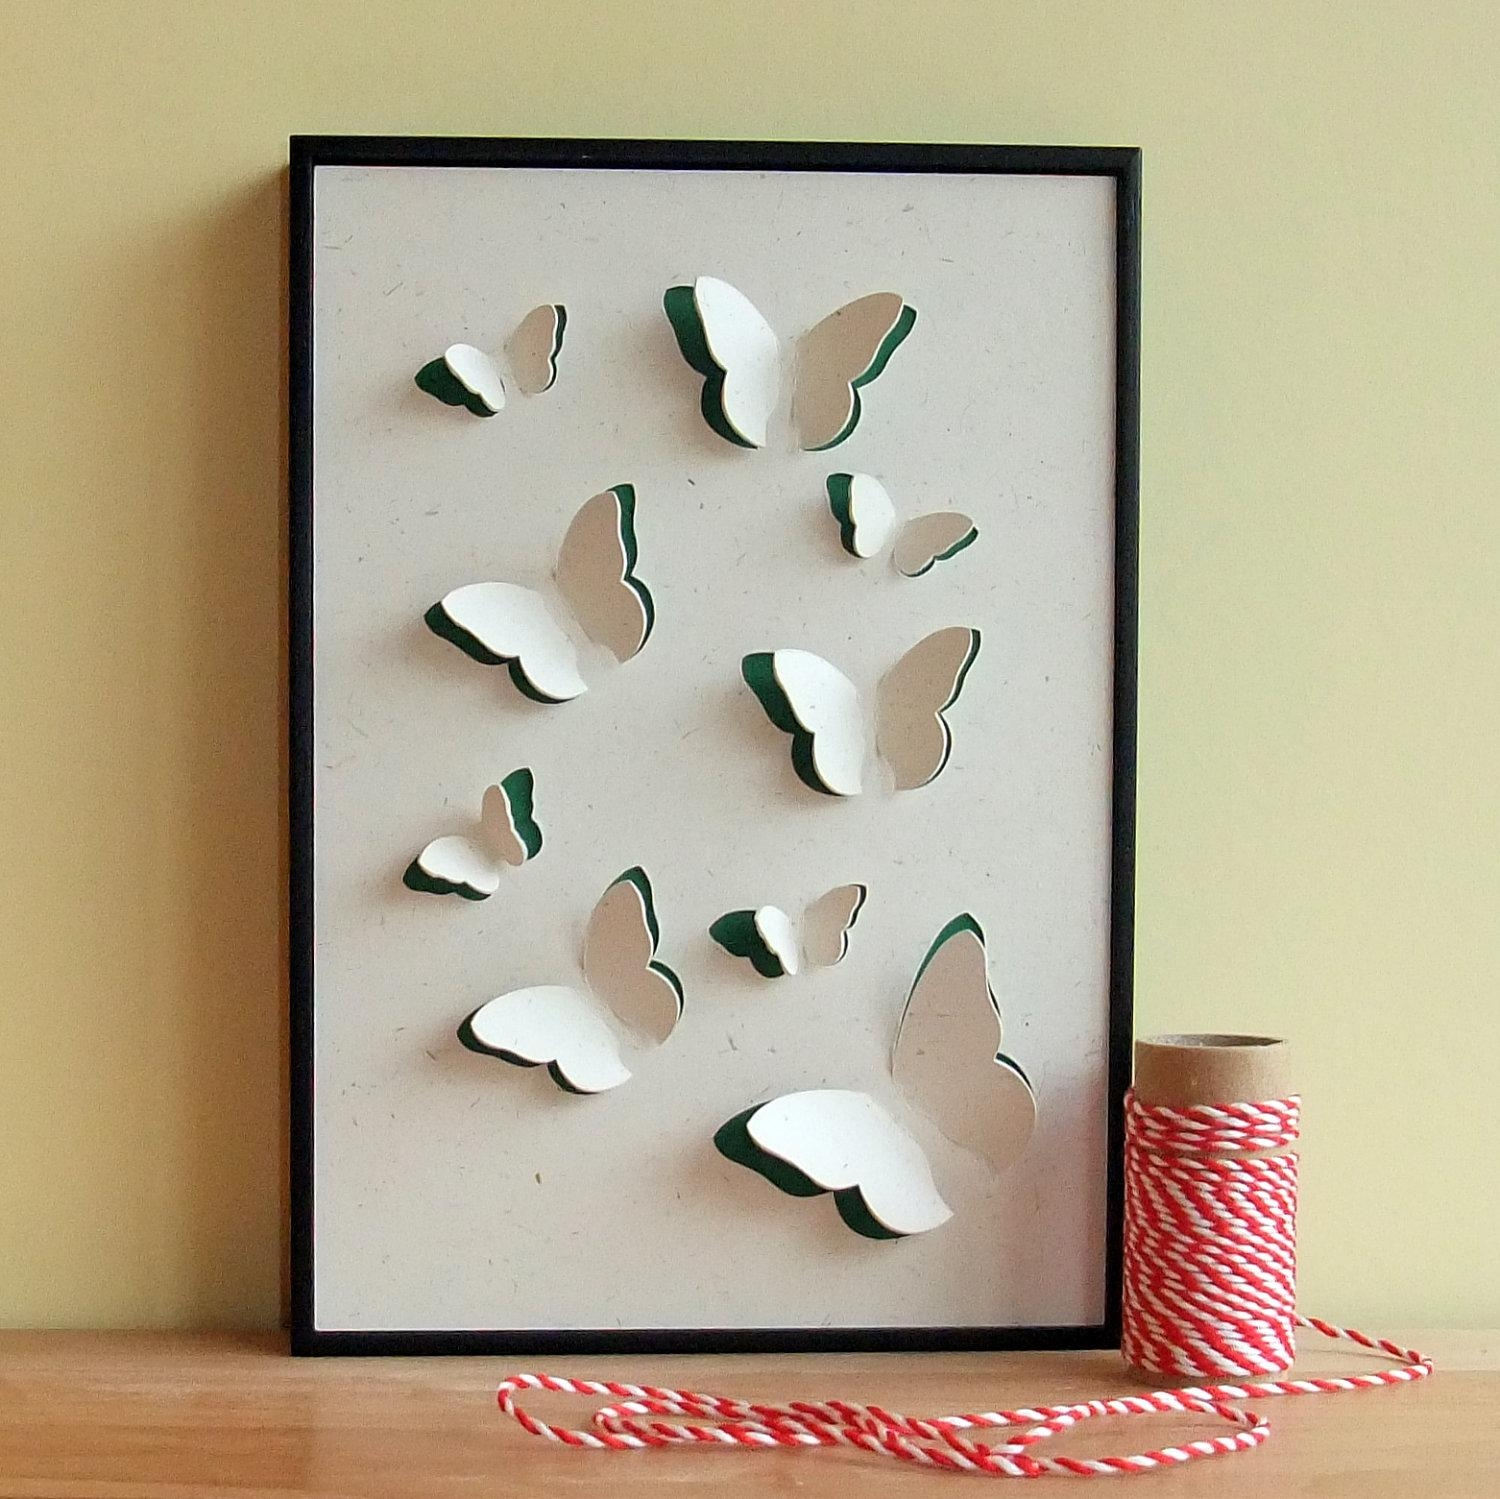 Wall Art Ideas Design : Diy Easy To Make 3D Paper Wall Art Regarding 3D Paper Wall Art (Image 20 of 20)